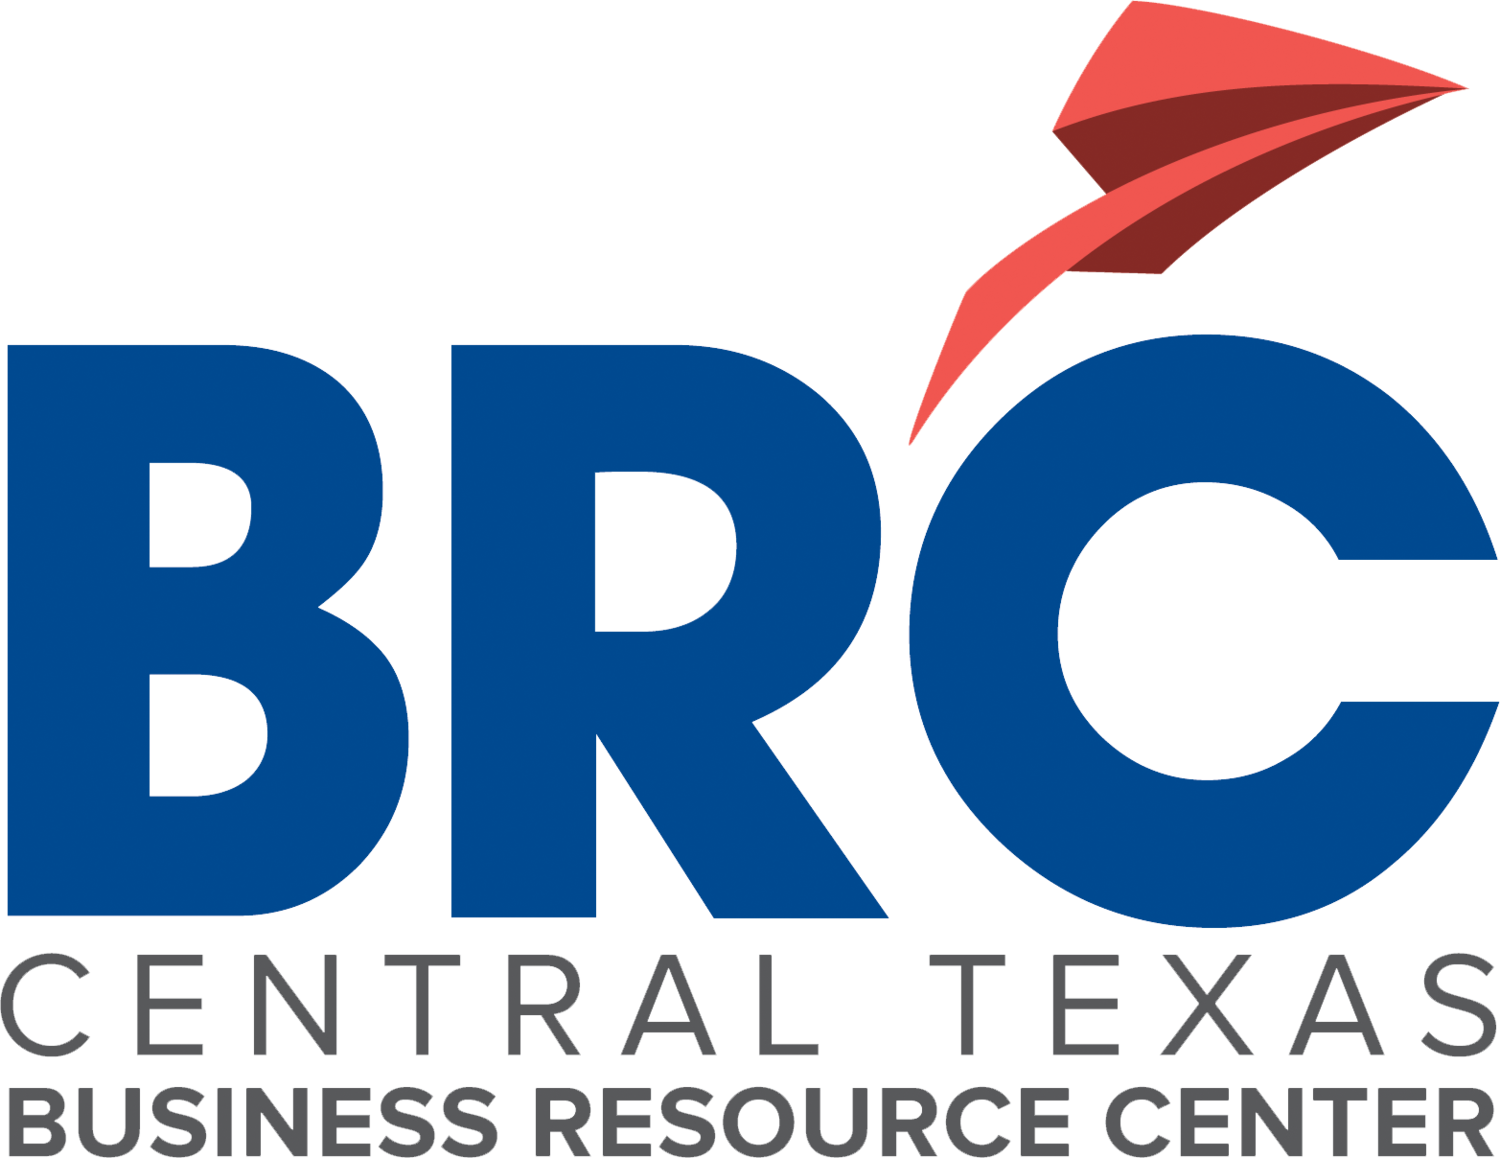 Central Texas Business Resource Center